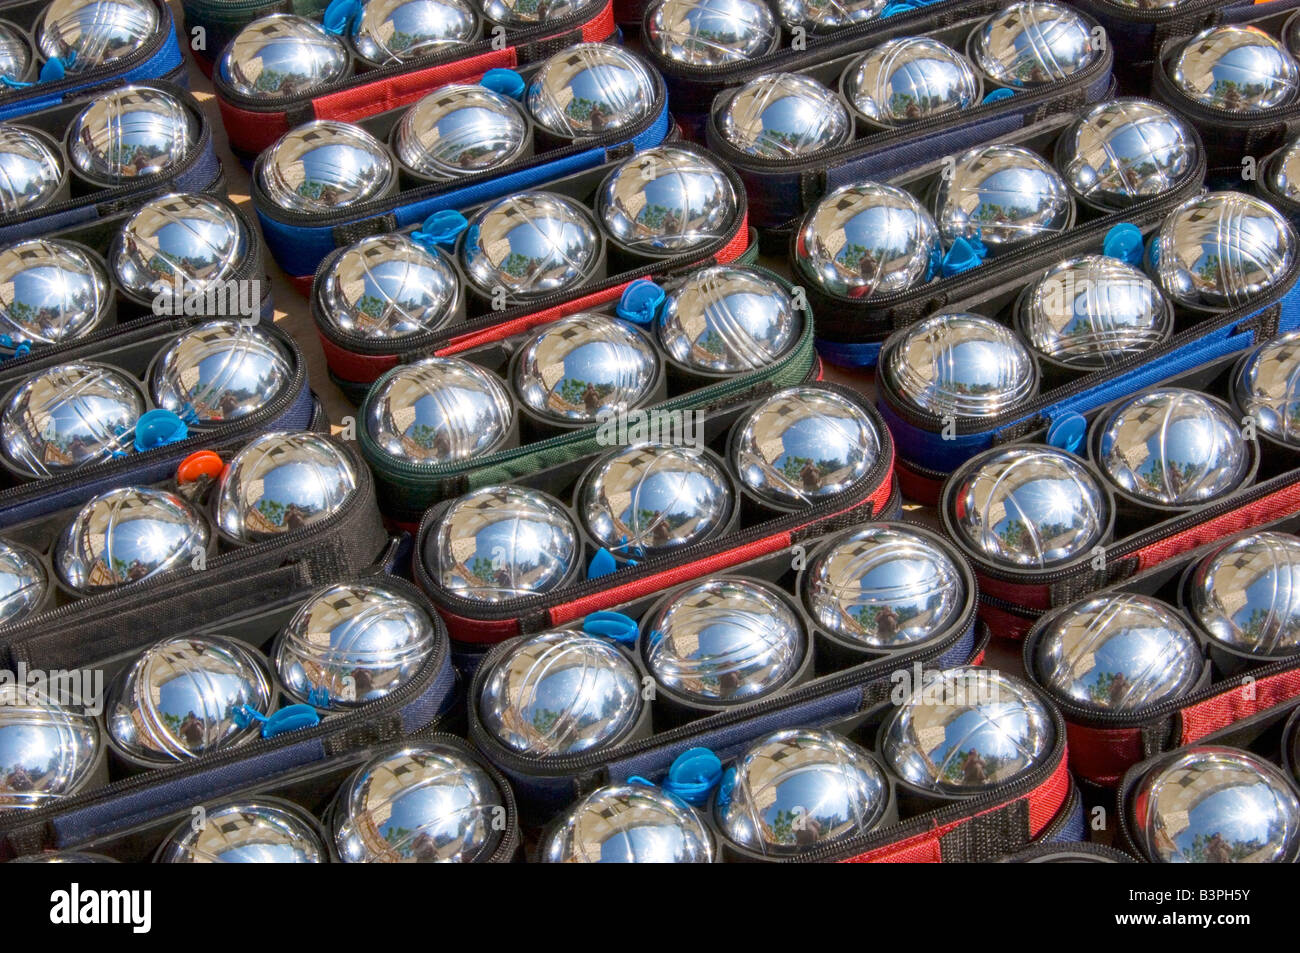 Boules balls at a market in Provence, France, Europe - Stock Image